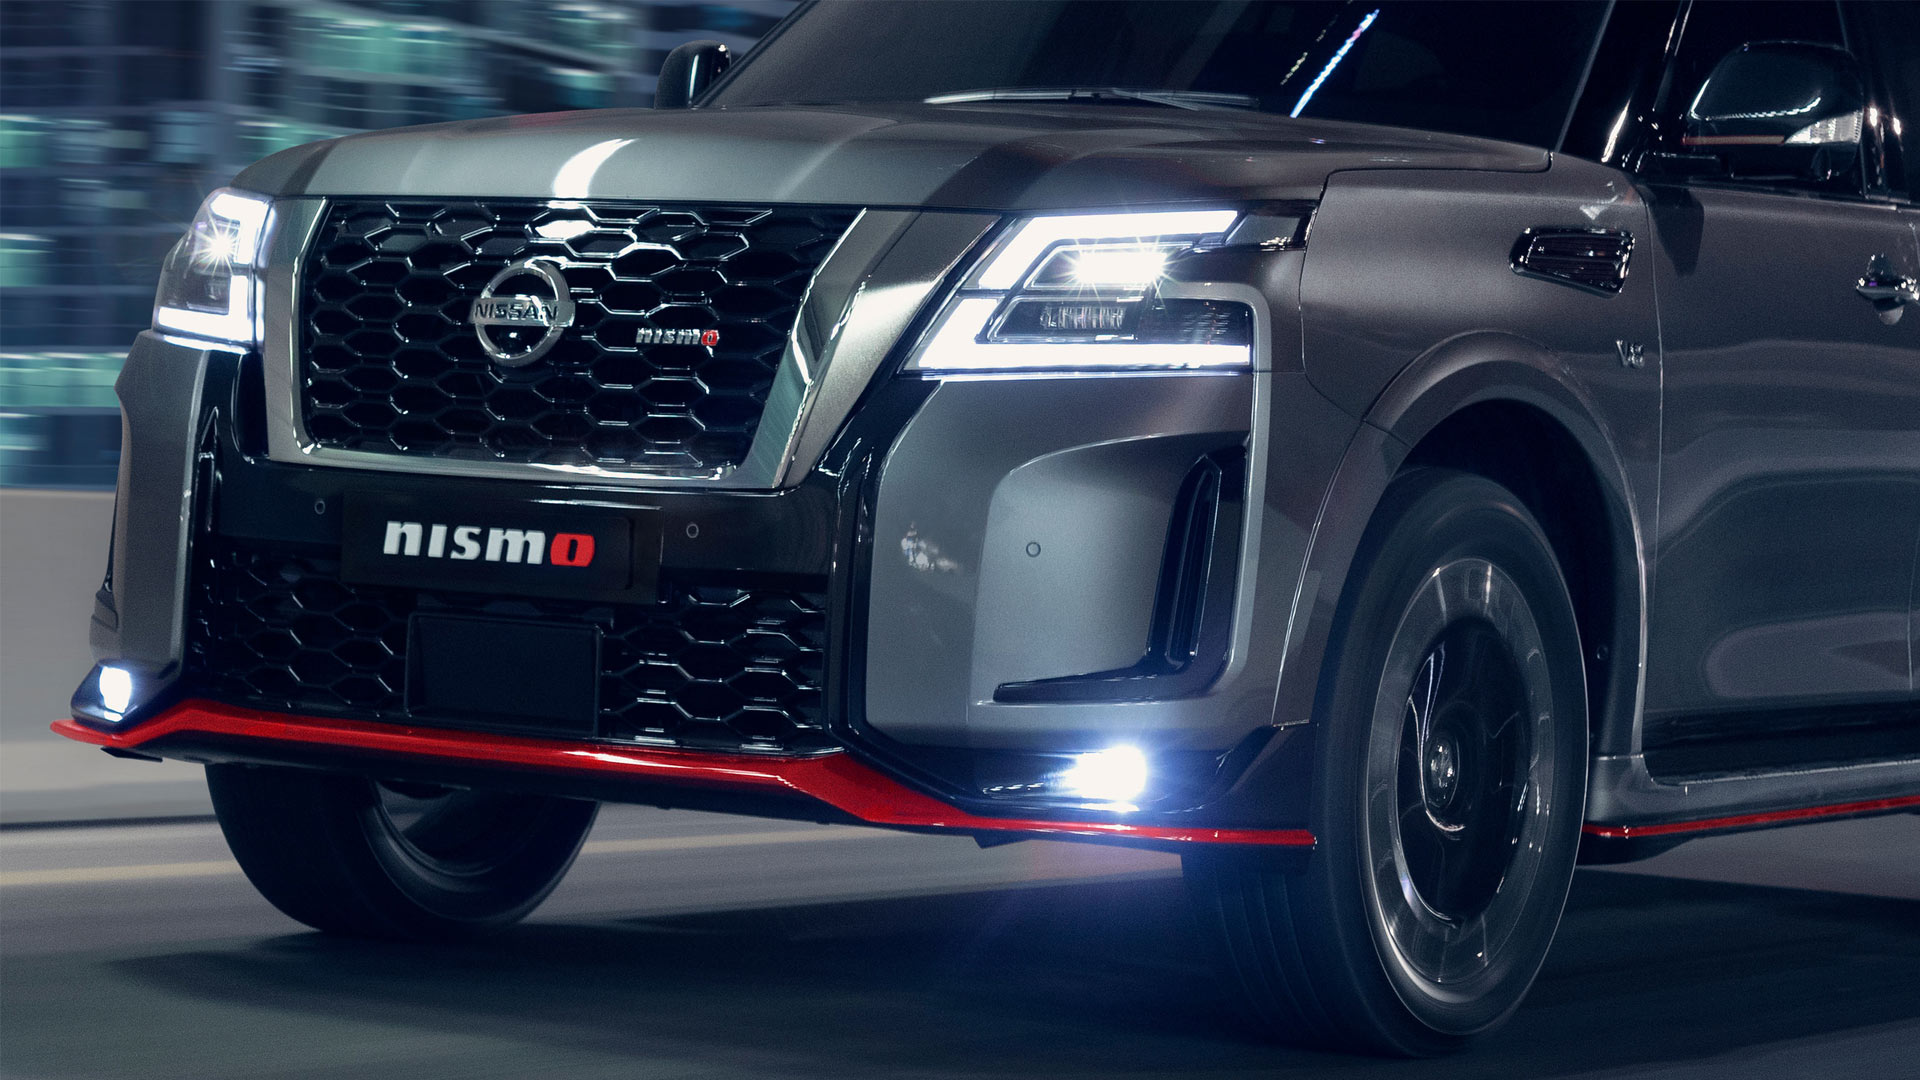 The Nissan Patrol Nismo Front Close-Up